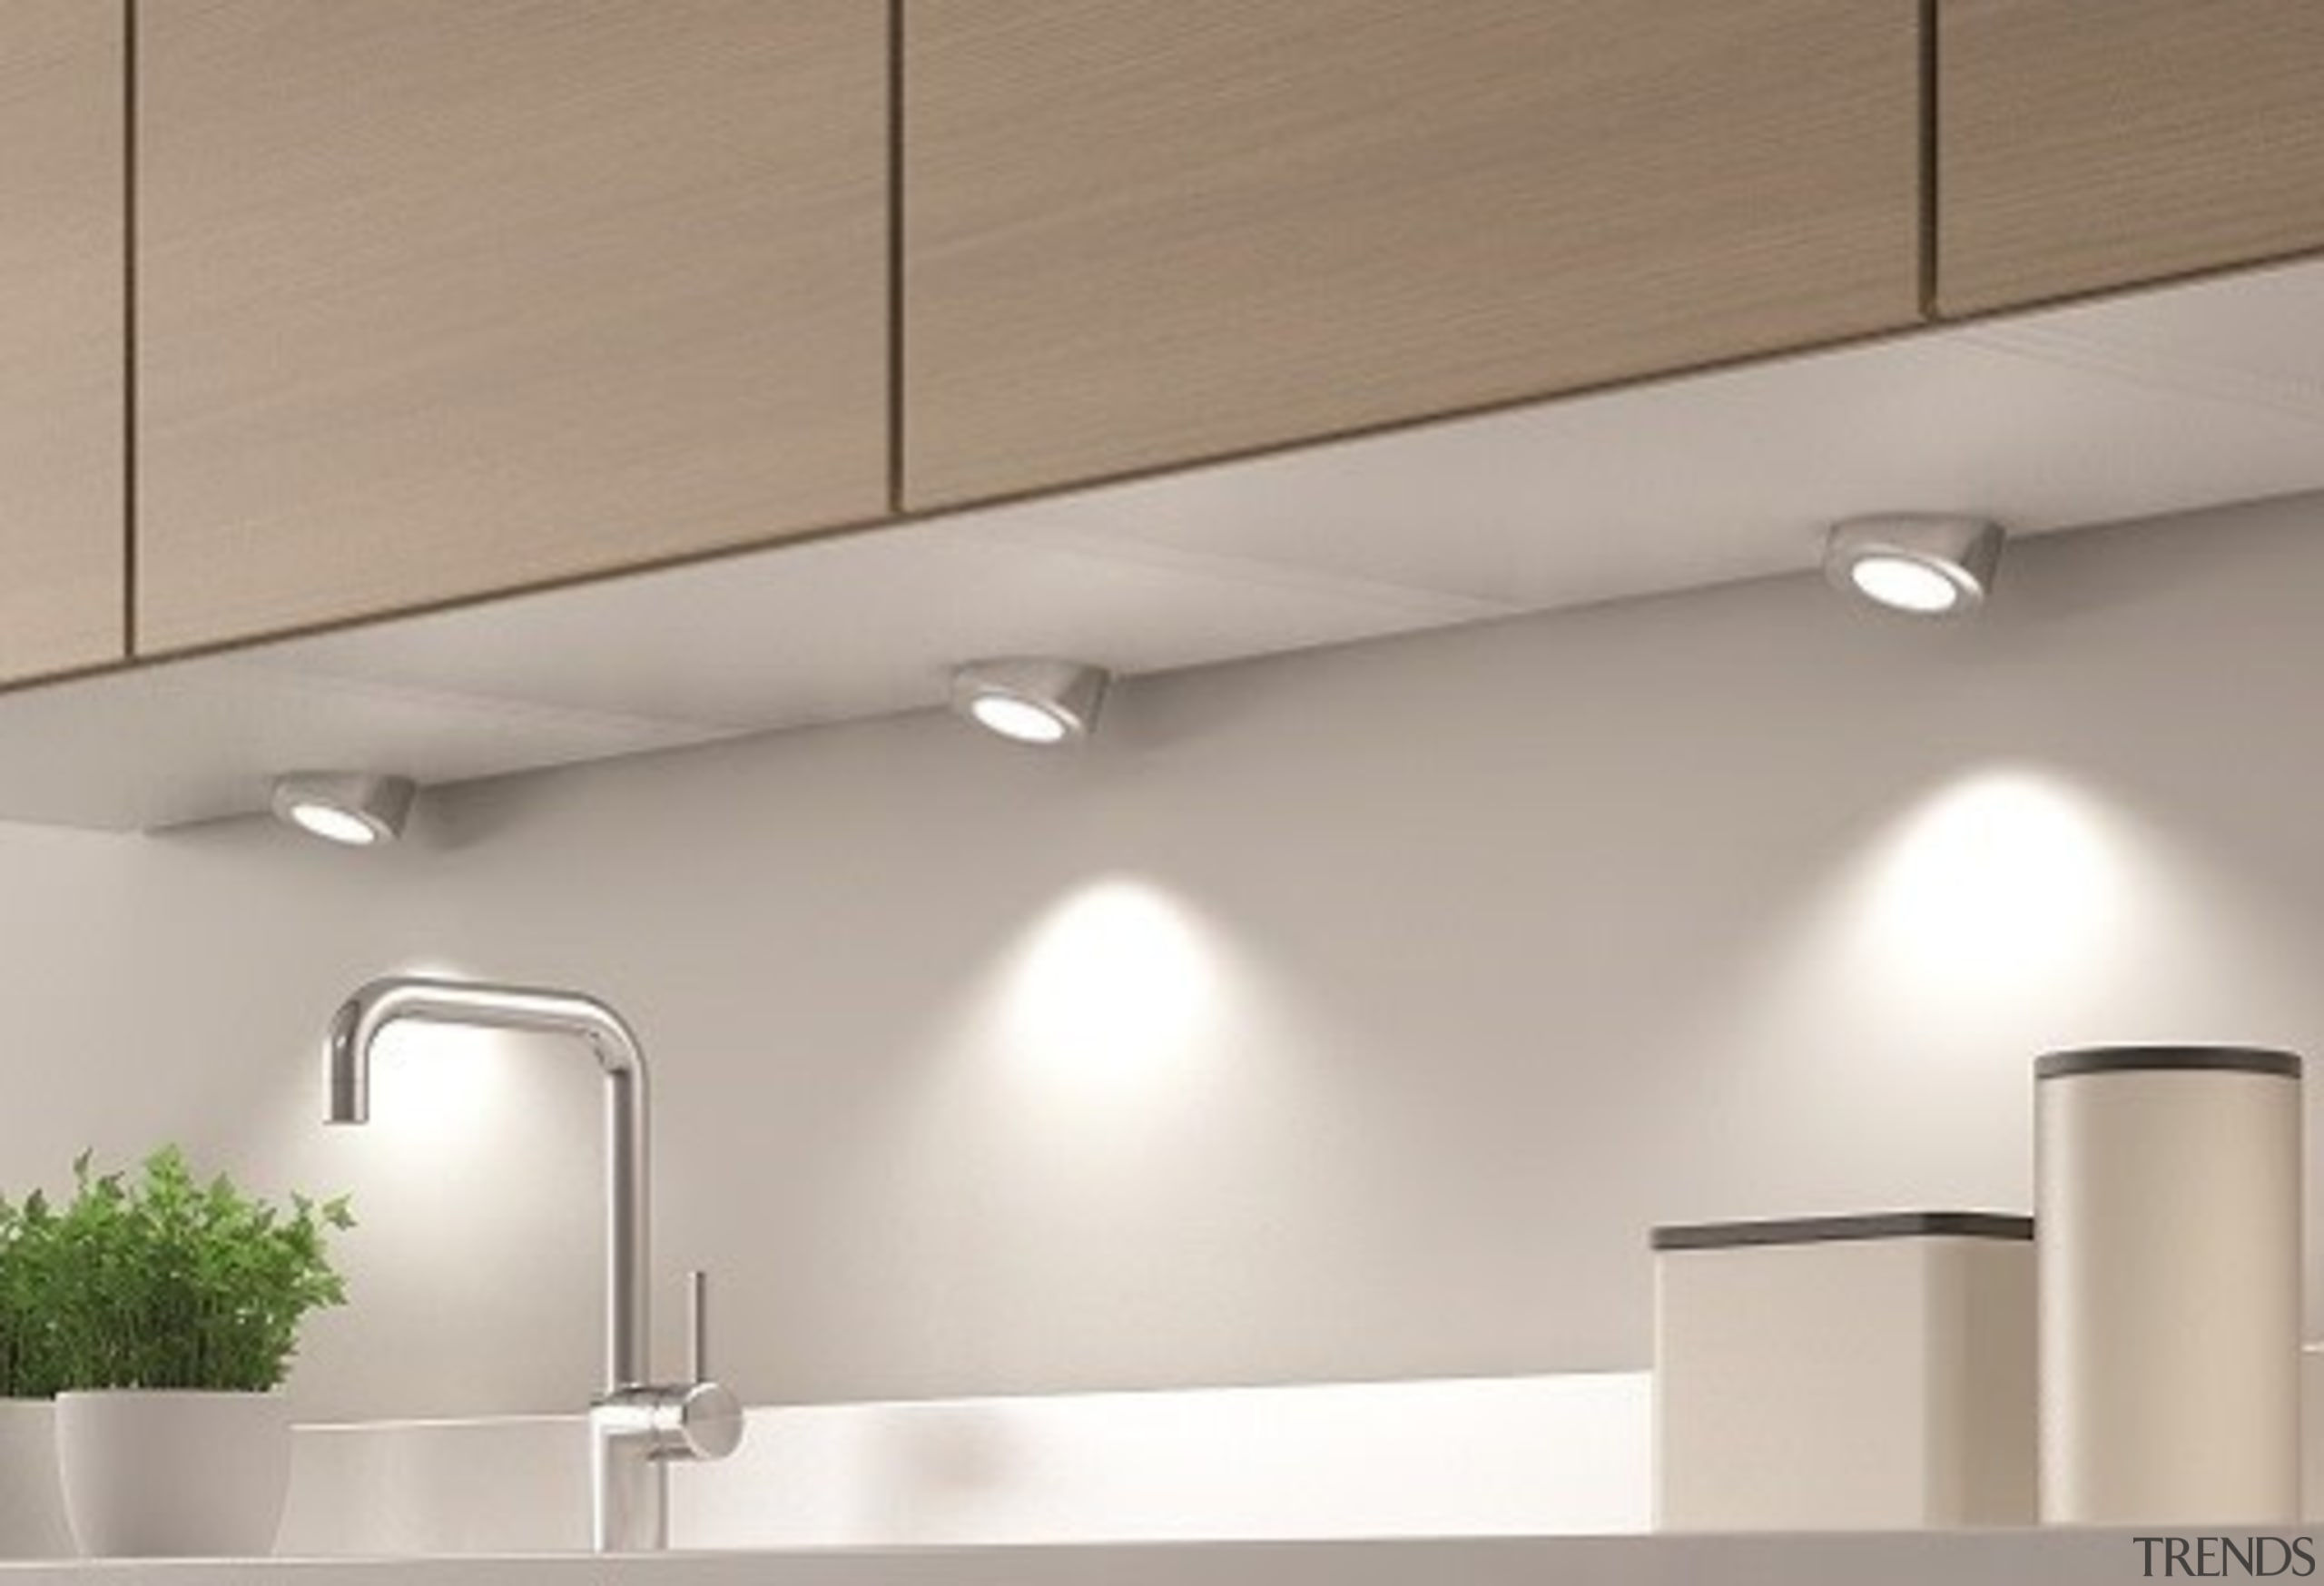 Designed in Italy to comply with Australian/New Zealand ceiling, daylighting, interior design, light, light fixture, lighting, product design, tap, wall, gray